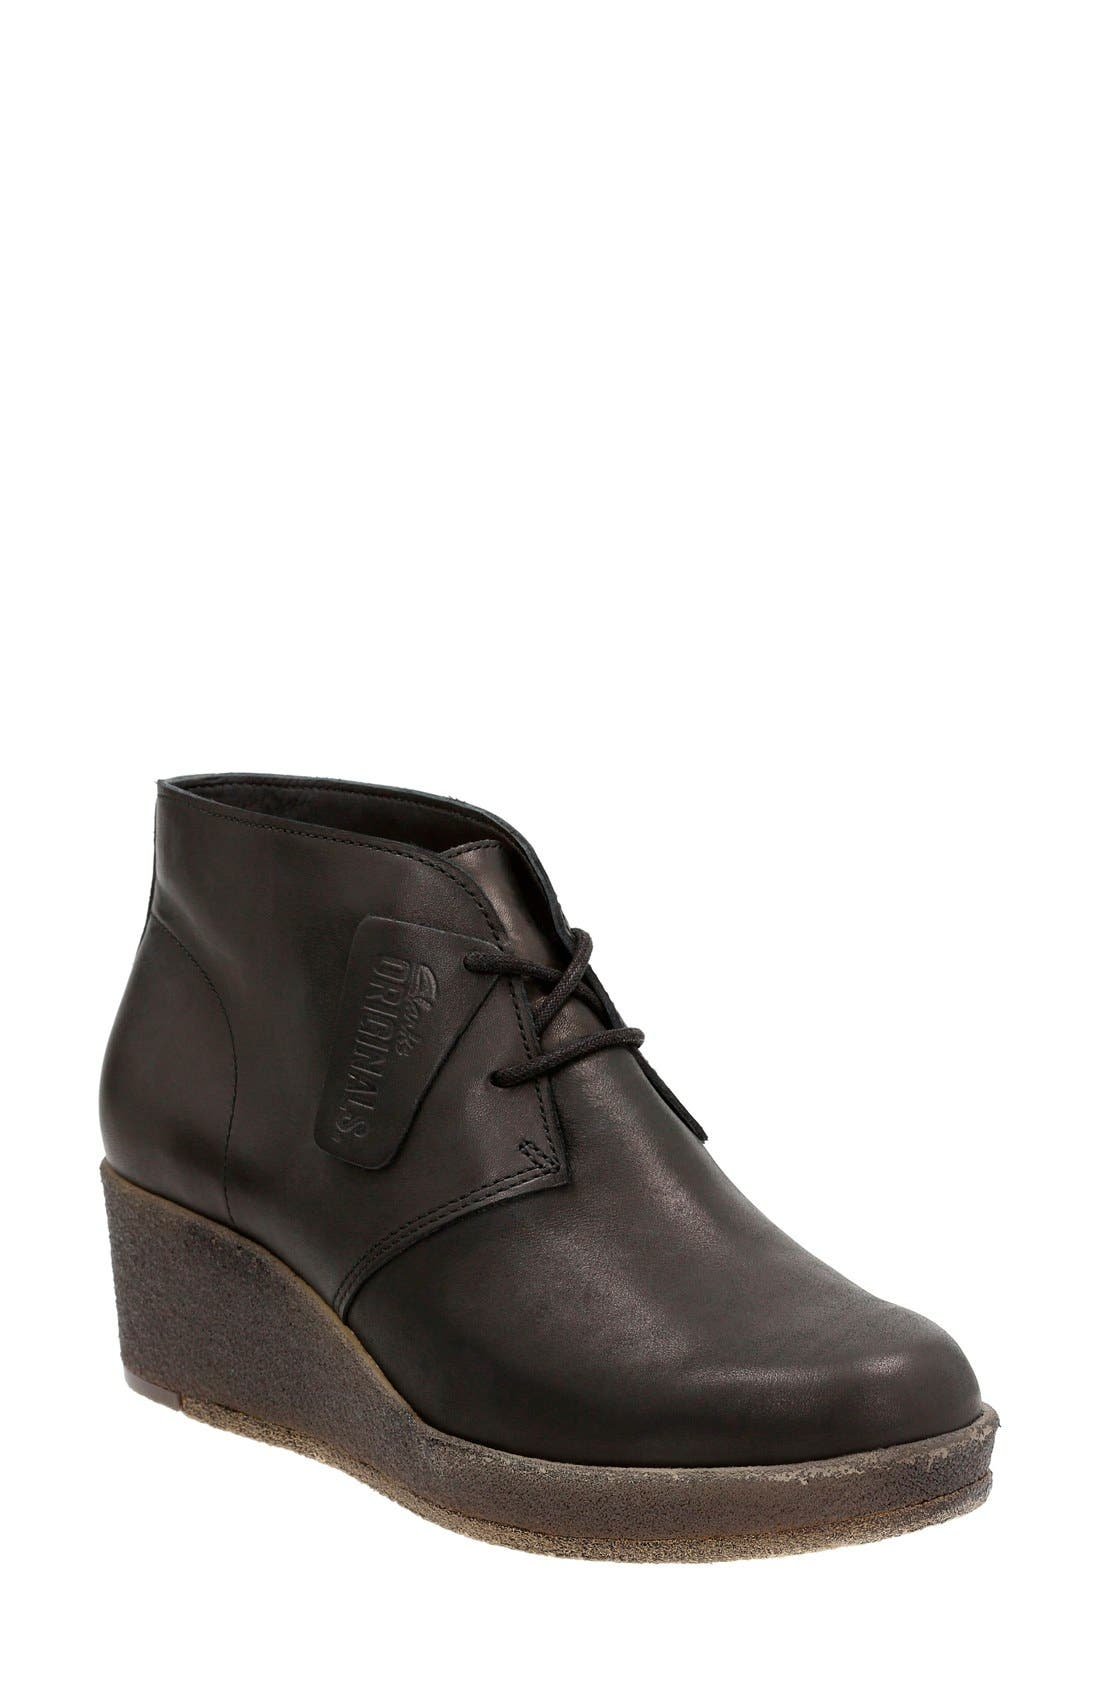 Originals 'Athie Terra' Wedge Boot,                             Main thumbnail 1, color,